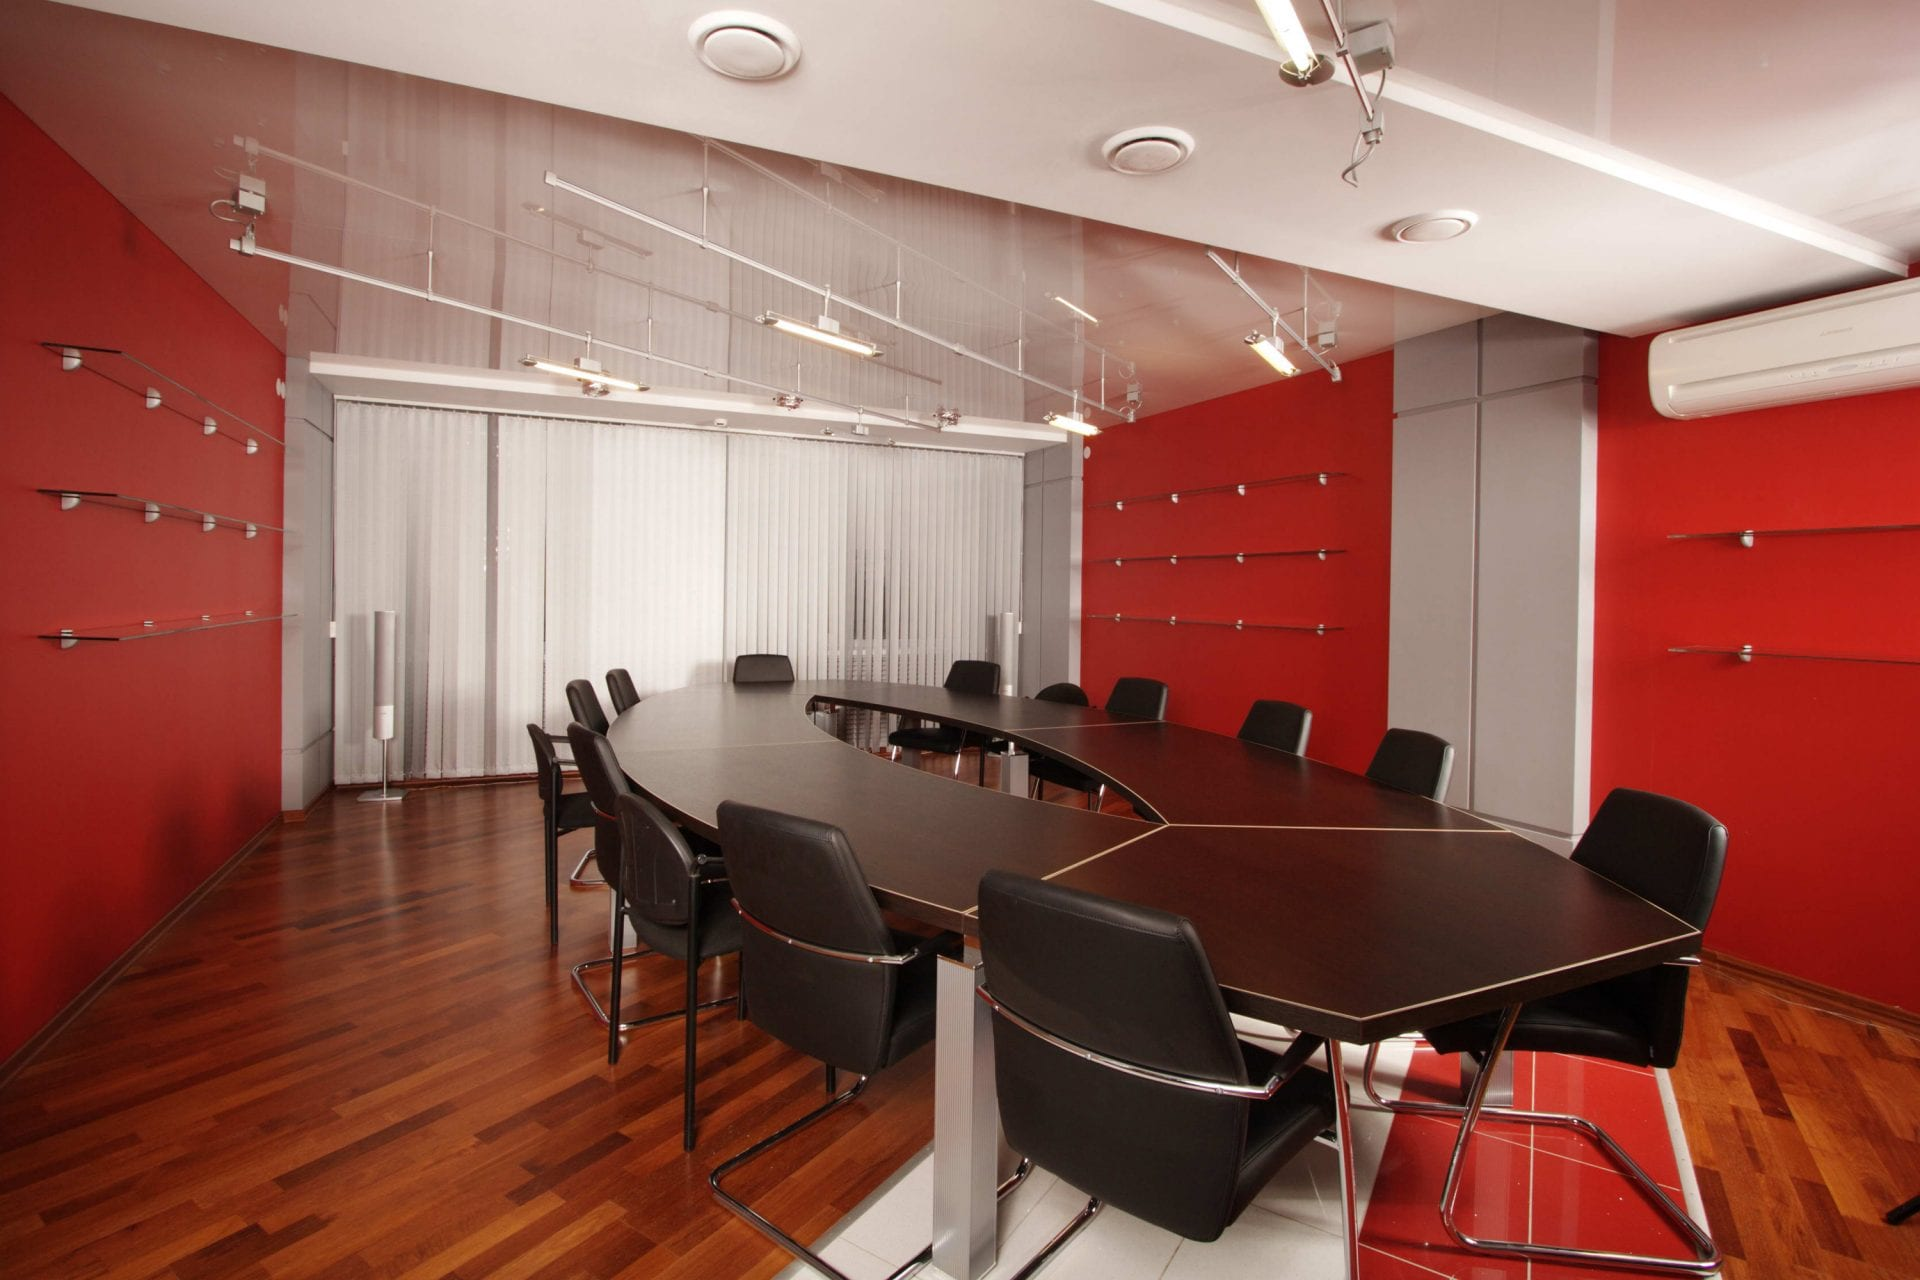 Updating Your Office Conference Room | Blog | Arizona Painting Company